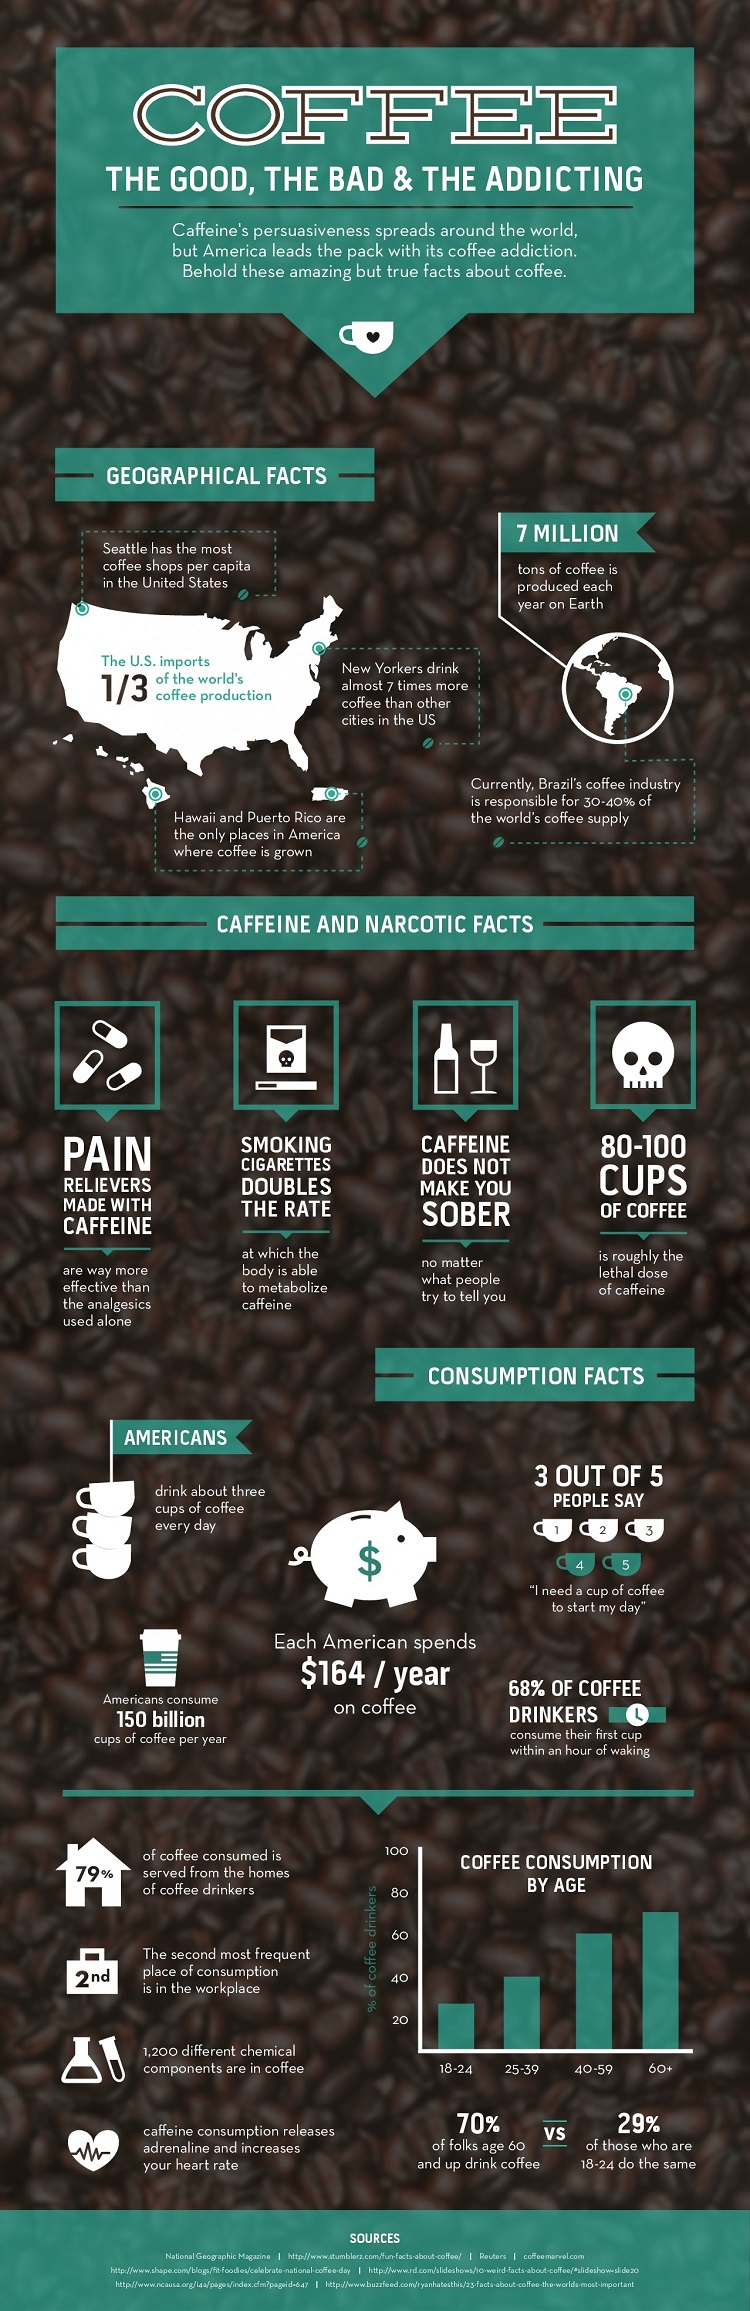 Americans' Coffee Habits